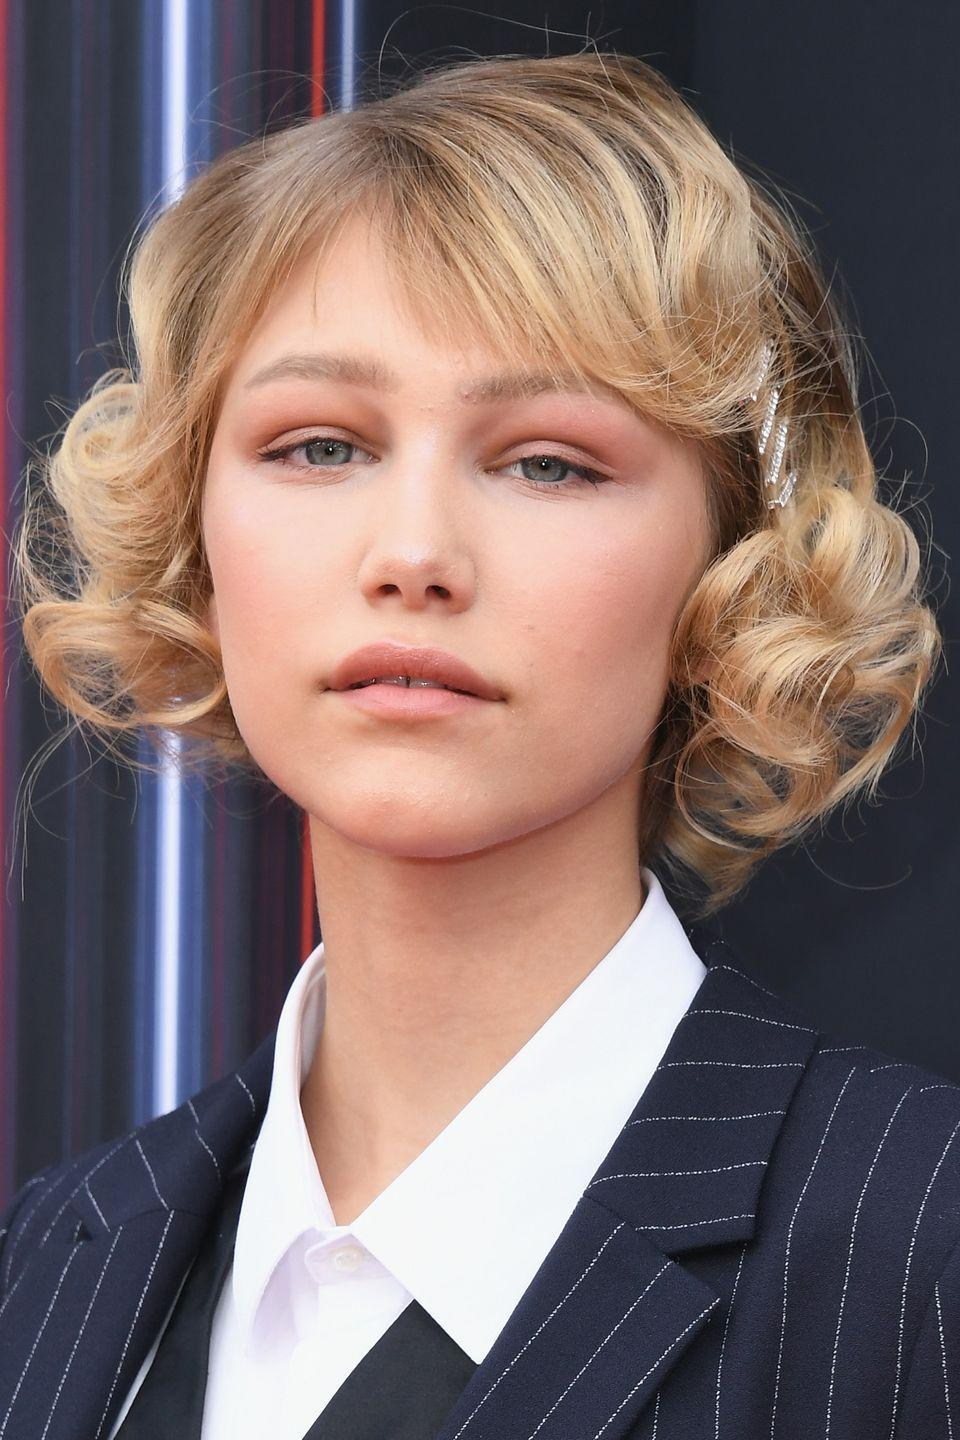 """<p>Sometimes subtly speaks volumes. Singer-songwriter <strong>Grace VanderWaal </strong>brings the glitz to this classic curly style with four rhinestone clips. And if rhinestones aren't her thing, you can go for rainbow or glitter clips. </p><p><strong><a class=""""link rapid-noclick-resp"""" href=""""https://www.amazon.com/Luxxii-Rhinestone-Crystal-Barrette-Silver/dp/B01N0RF14Q/?tag=syn-yahoo-20&ascsubtag=%5Bartid%7C10055.g.3821%5Bsrc%7Cyahoo-us"""" rel=""""nofollow noopener"""" target=""""_blank"""" data-ylk=""""slk:SHOP RHINESTONE HAIR CLIPS"""">SHOP RHINESTONE HAIR CLIPS</a></strong></p>"""